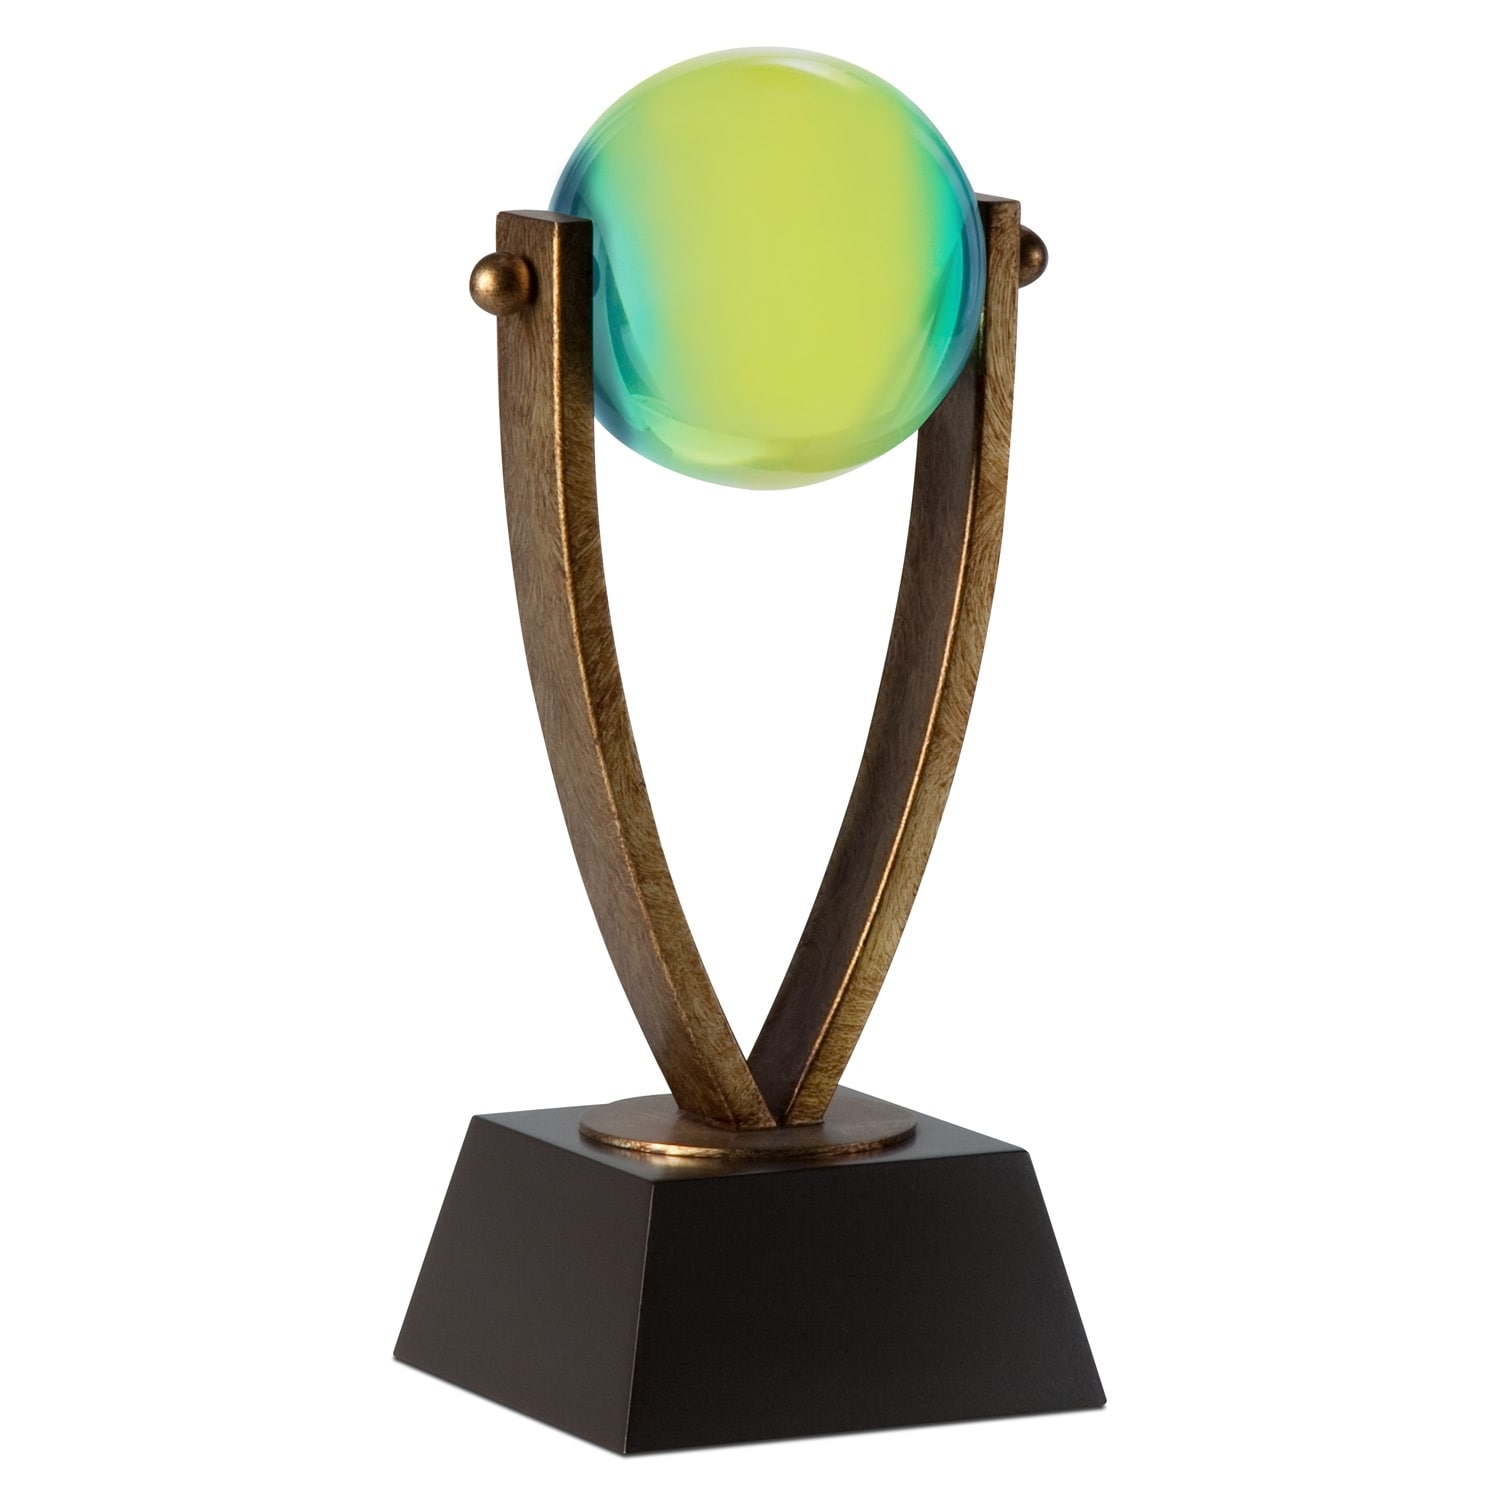 Blue and Green Ball Tabletop Accessory